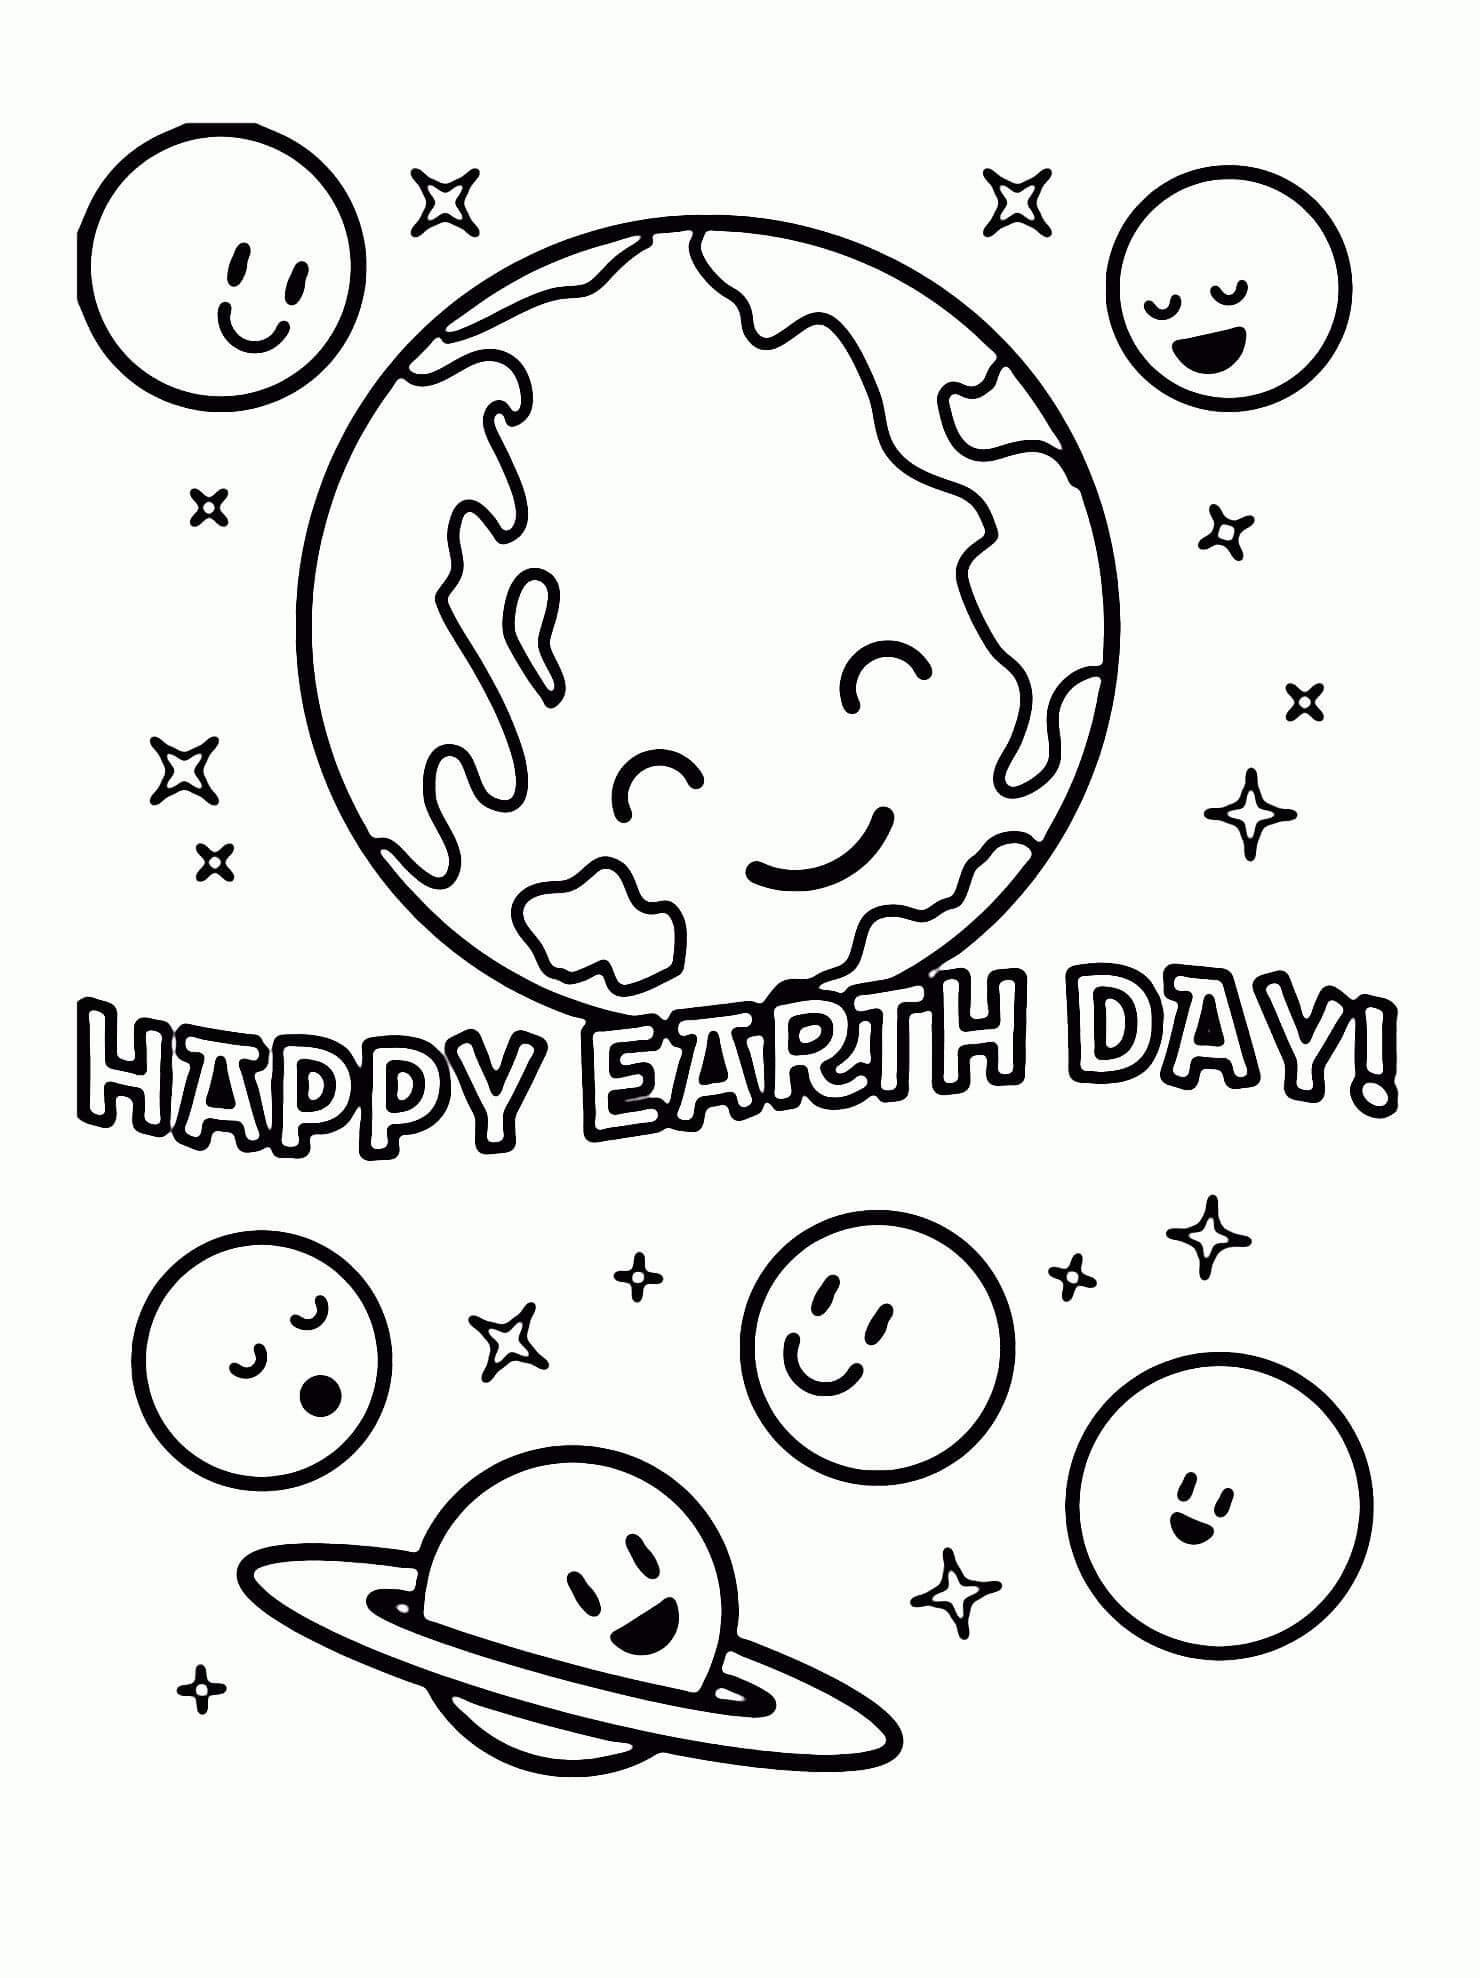 Free Printable Earth Day Coloring Pages And Activities Free Earth Day Coloring Pages With Free Earth Day Coloring Pages